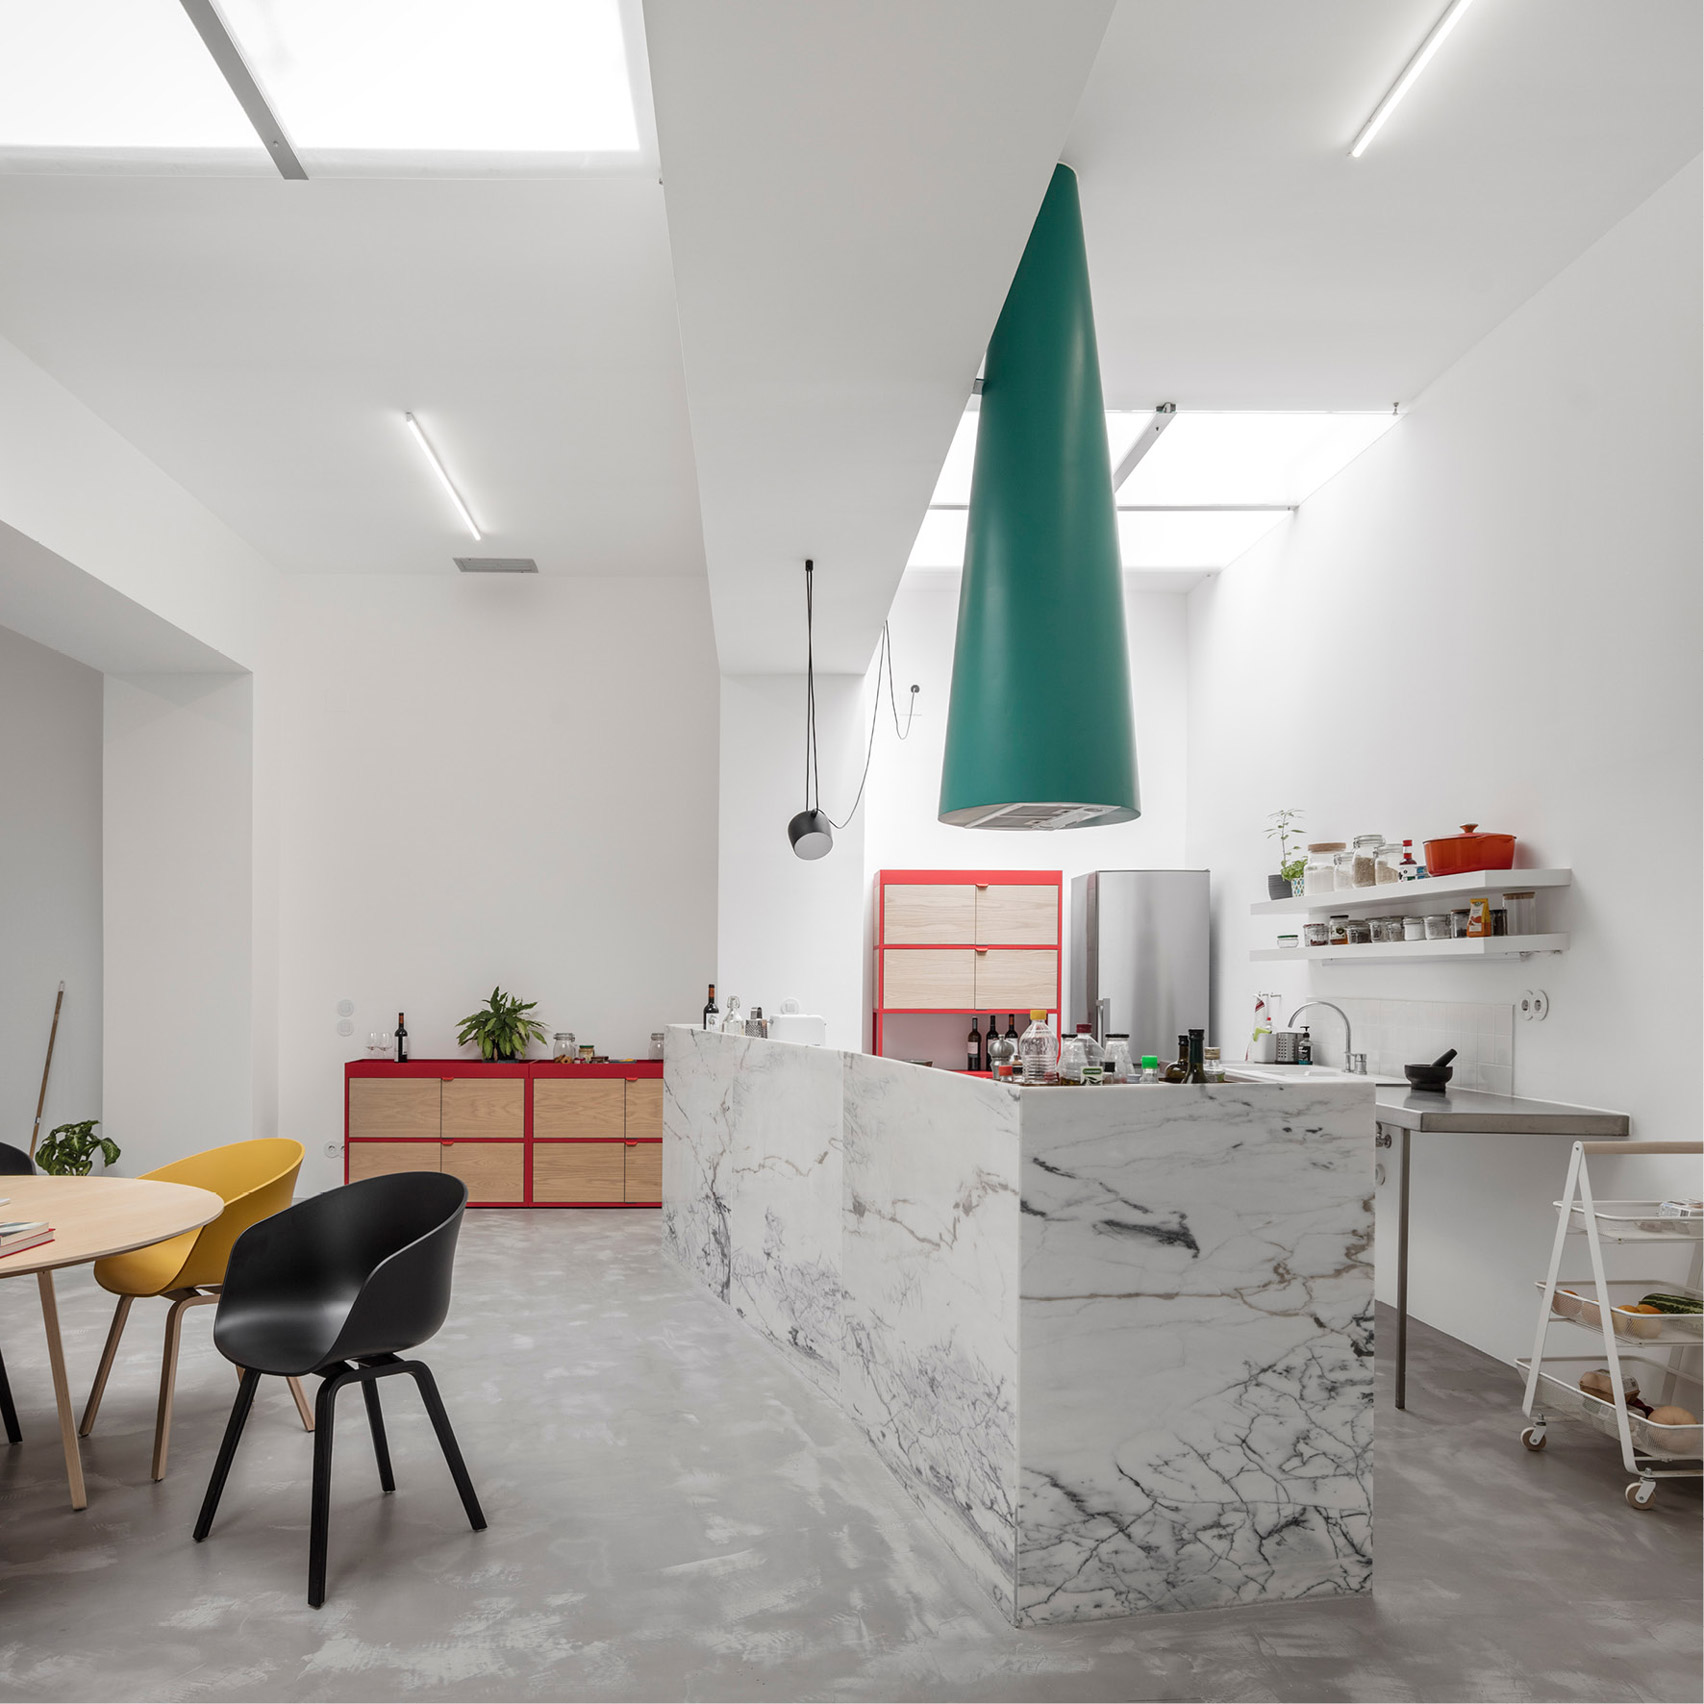 Design News: Portuguese Studio Fala Atelier Transforms Garage into Stunning Home design news Design News: Studio Fala Atelier Transforms Garage into Stunning Home Design News Portuguese Studio Fala Atelier Transforms Garage into Stunning Home 4